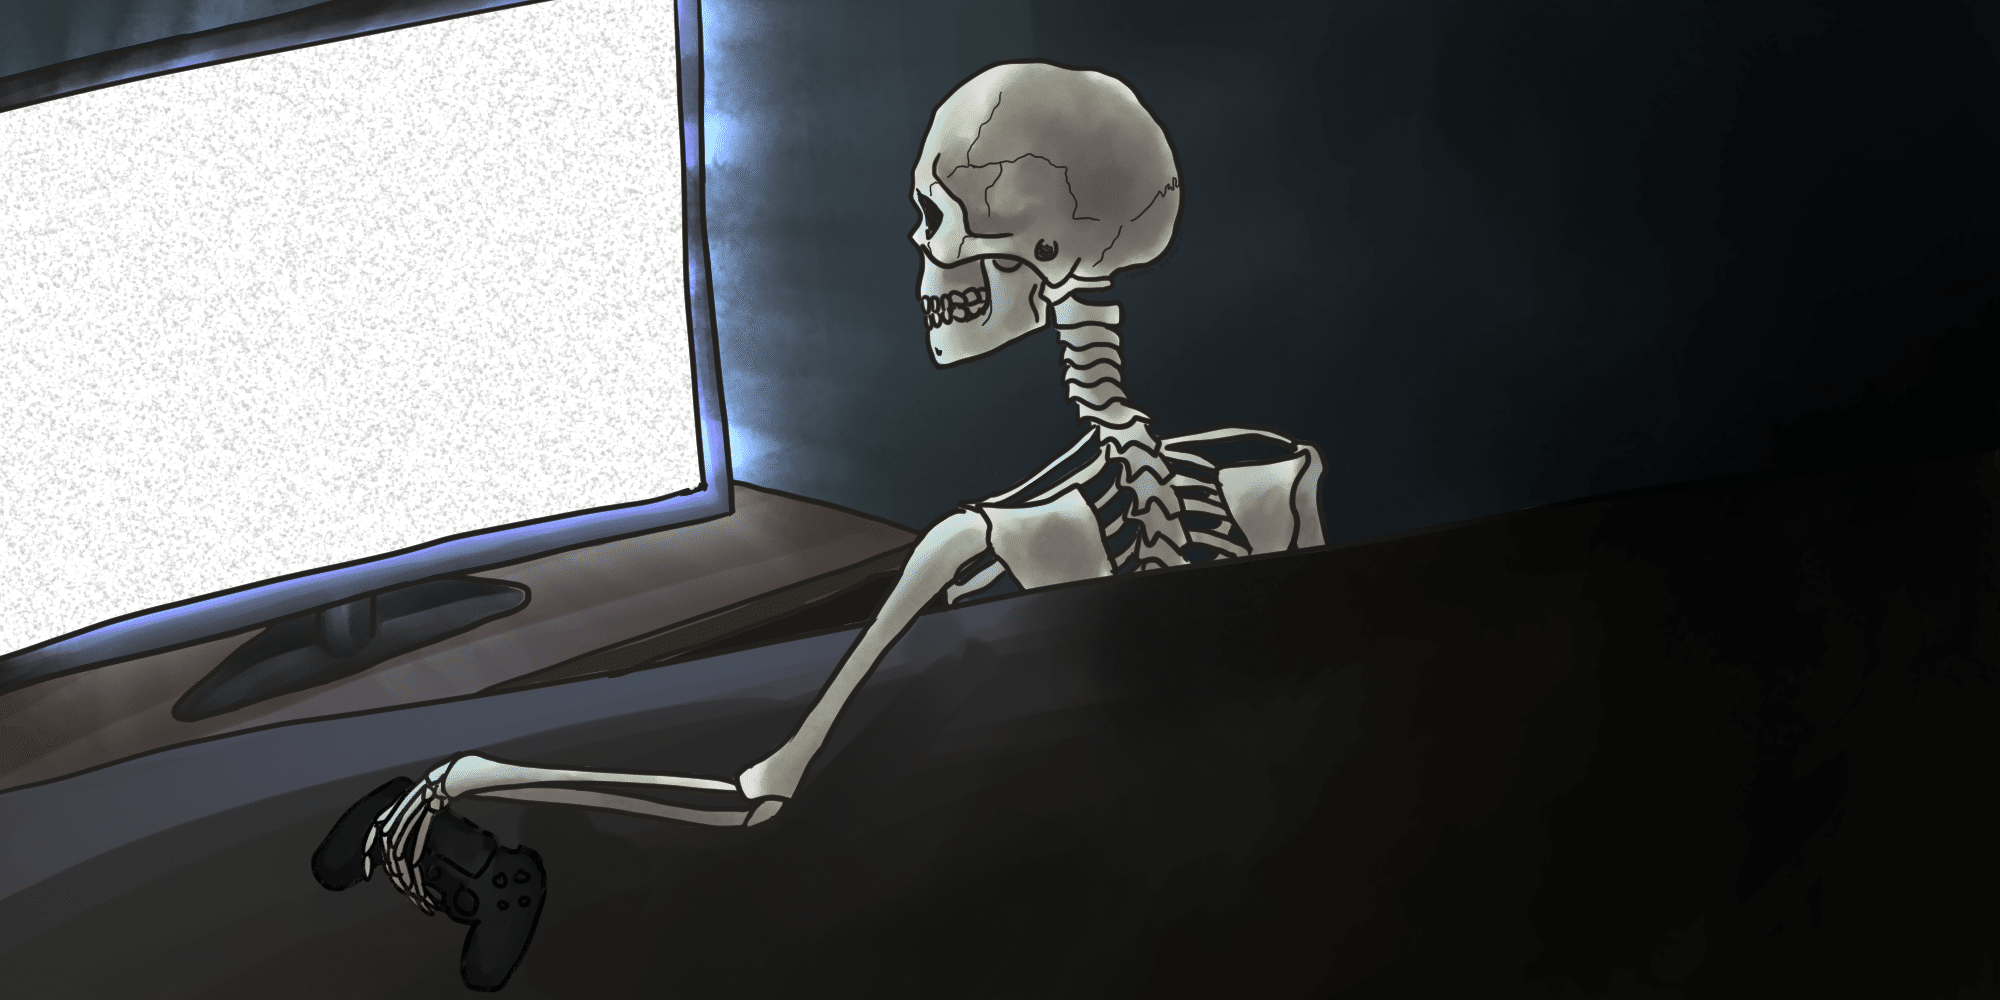 a skeleton holding a video game controller stares at a TV